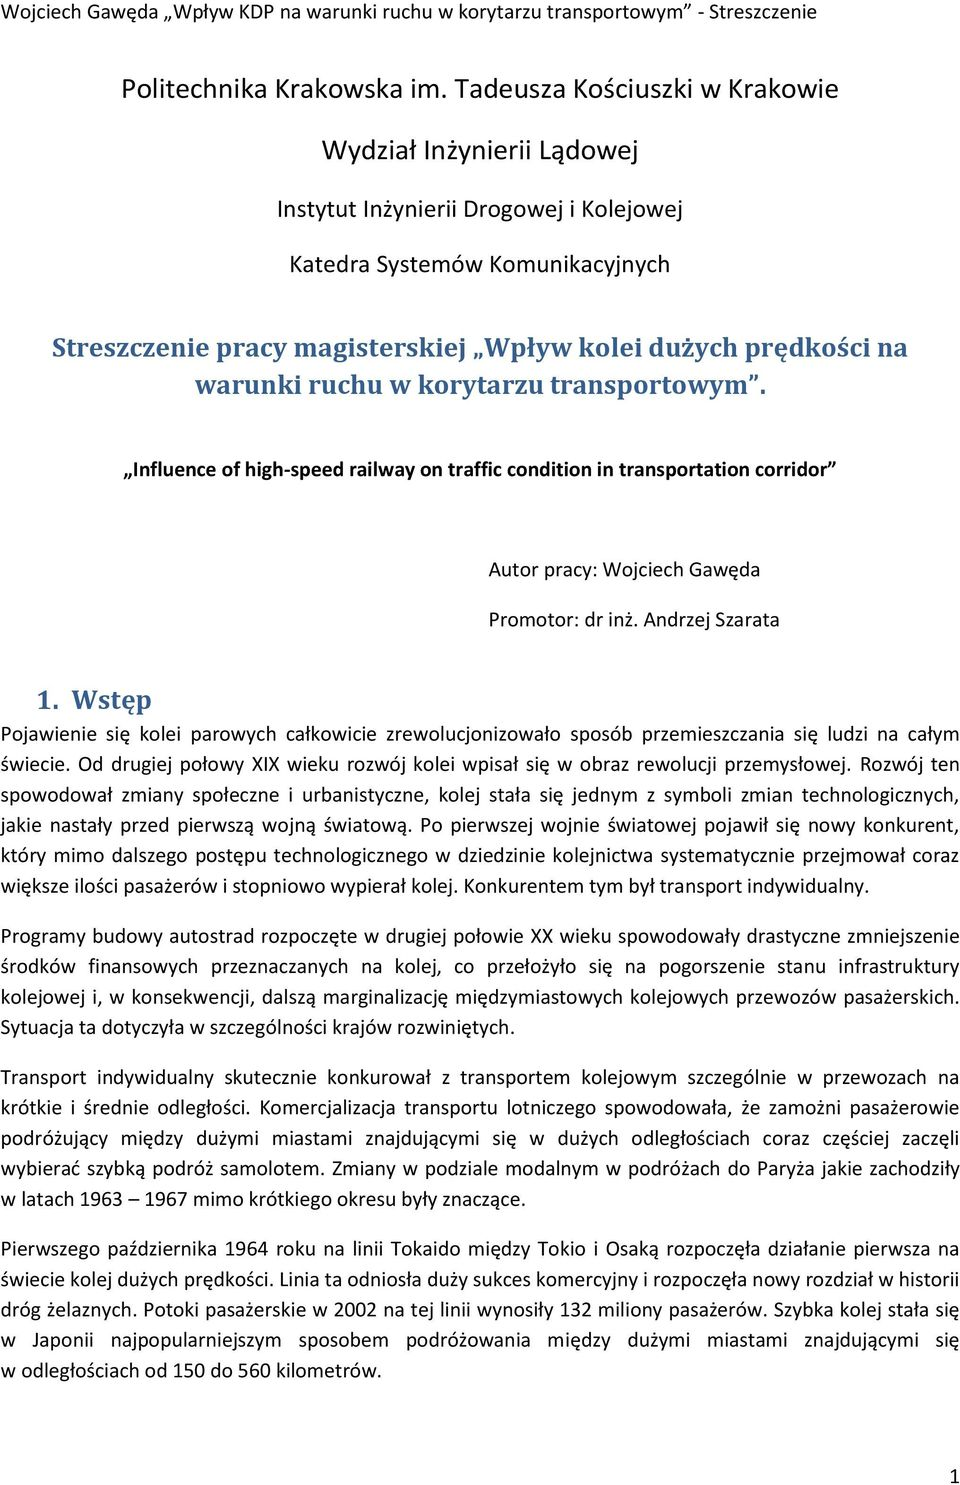 warunki ruchu w korytarzu transportowym. Influence of high-speed railway on traffic condition in transportation corridor Autor pracy: Wojciech Gawęda Promotor: dr inż. Andrzej Szarata 1.